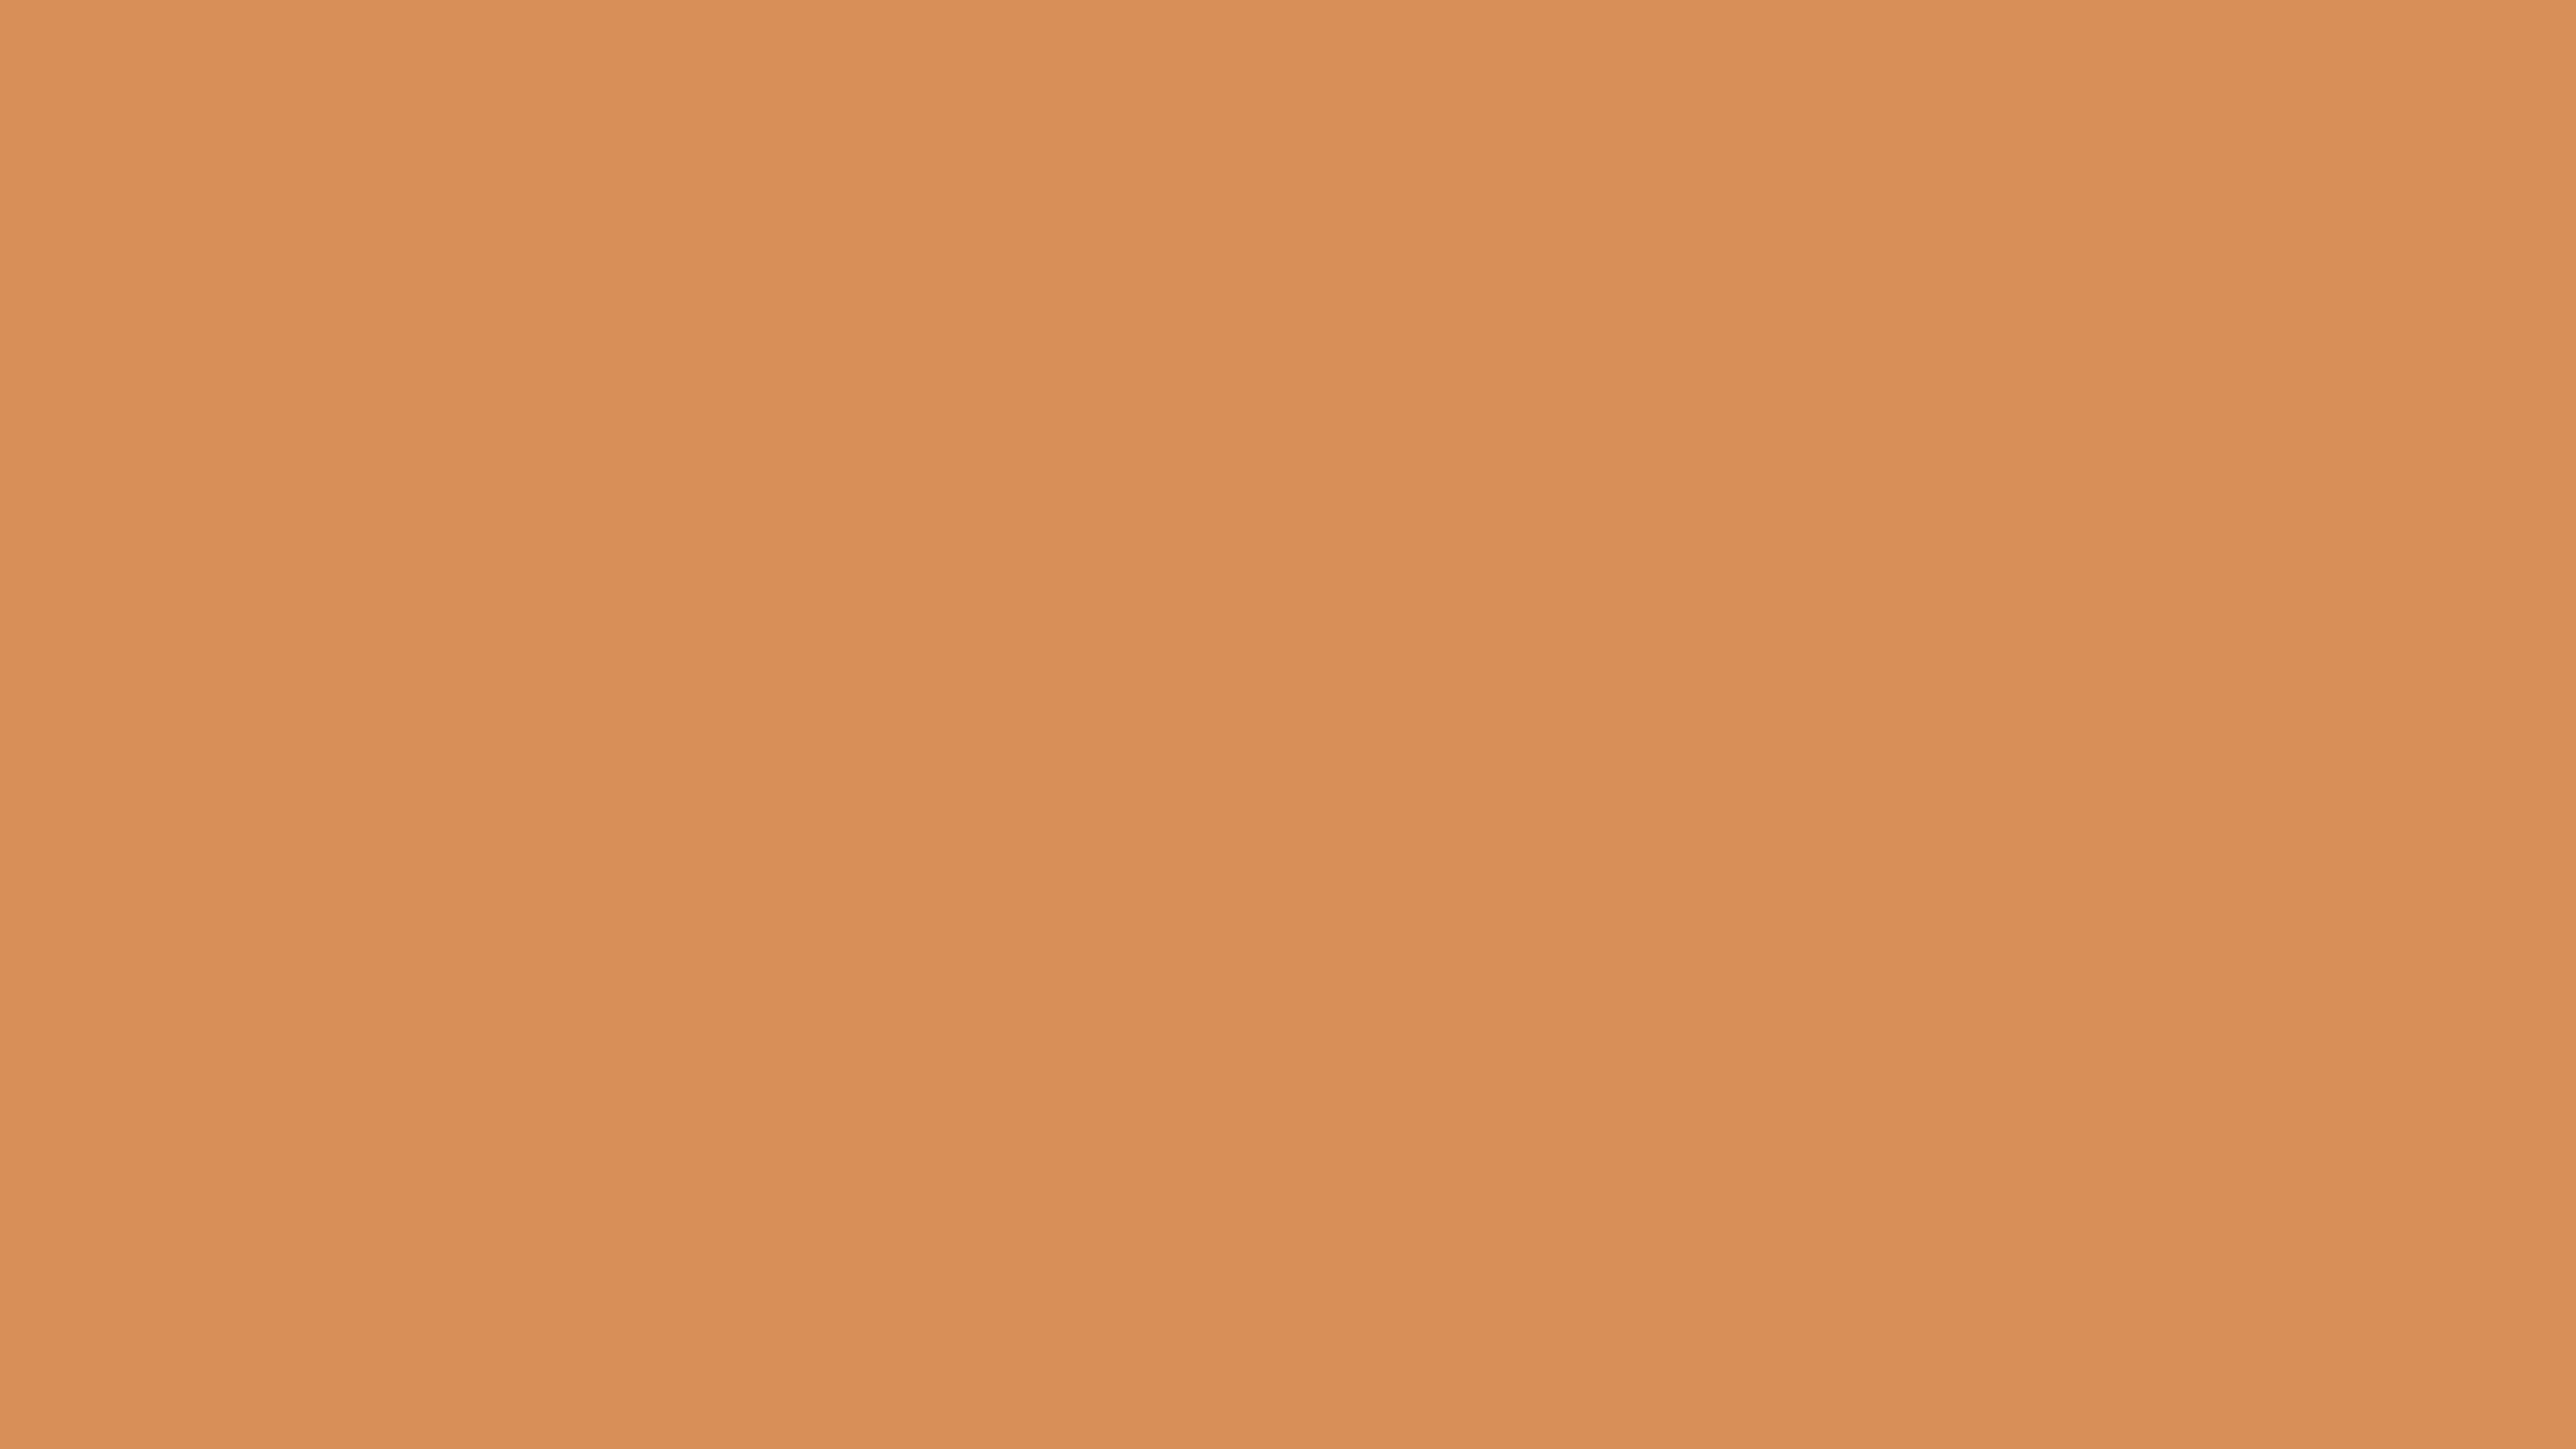 5120x2880 Persian Orange Solid Color Background